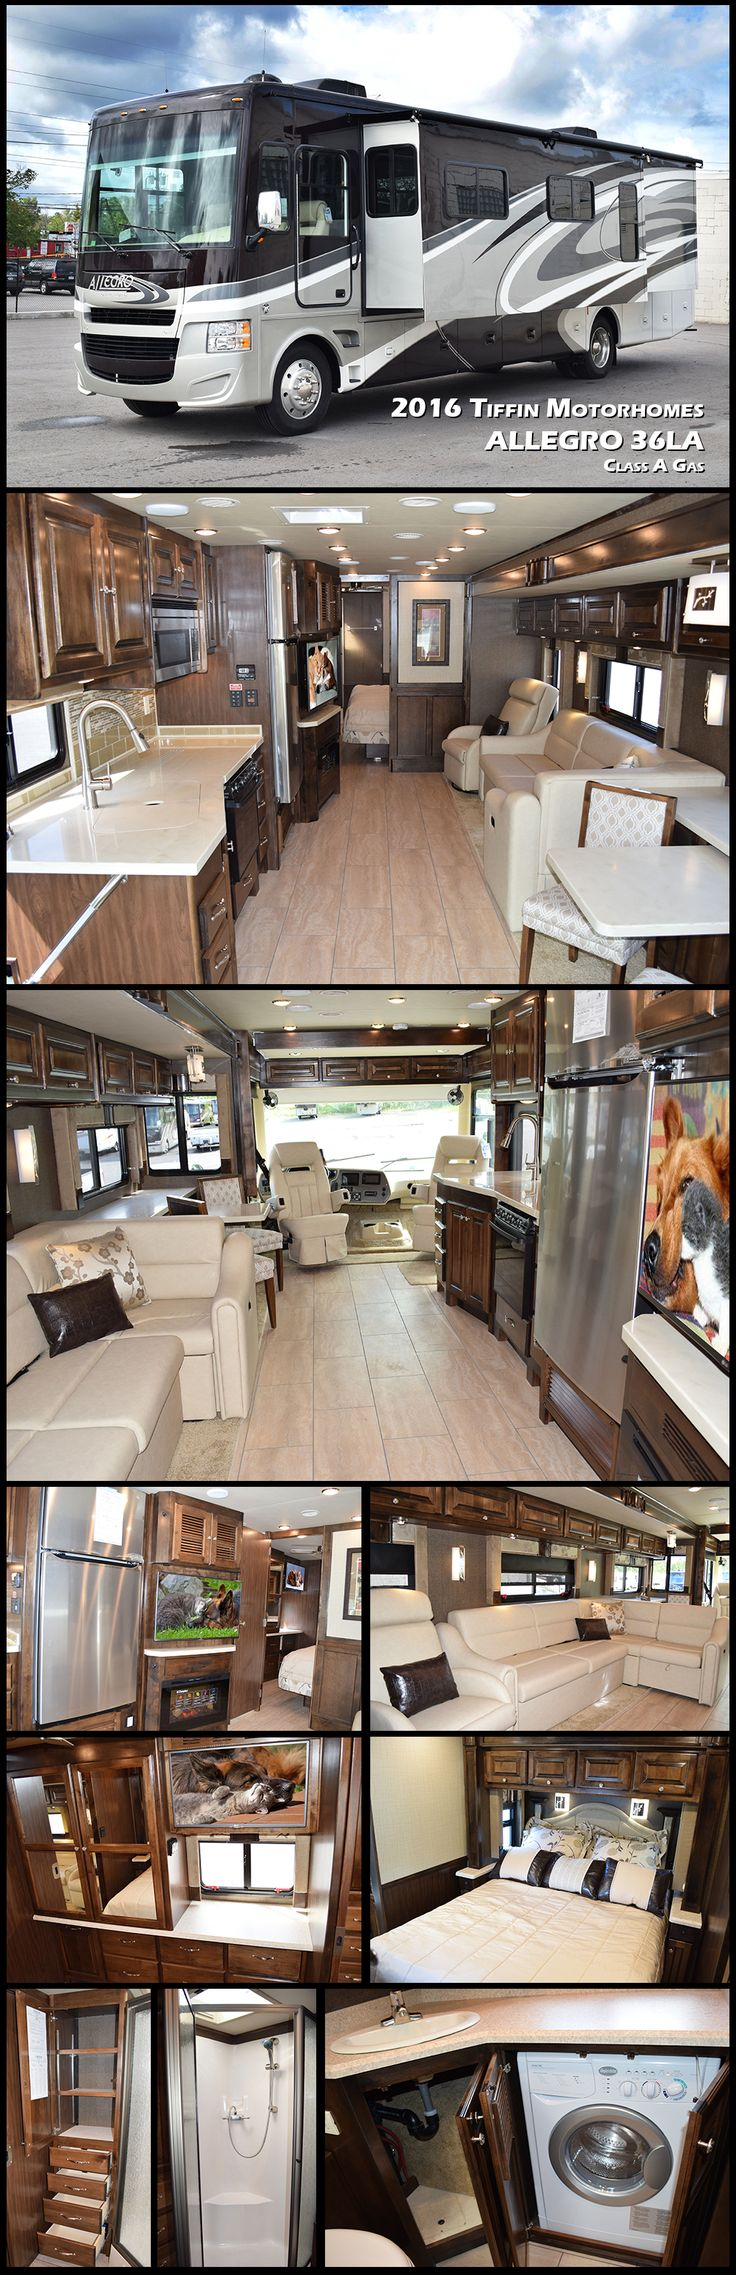 2016 ALLEGRO 36LA Class A Gas by Tiffin Motorhomes. The Allegro is a favorite of first-time RV owners, earning raves for its comfort, design, reliability, and affordability!                                                                                                                                                     More